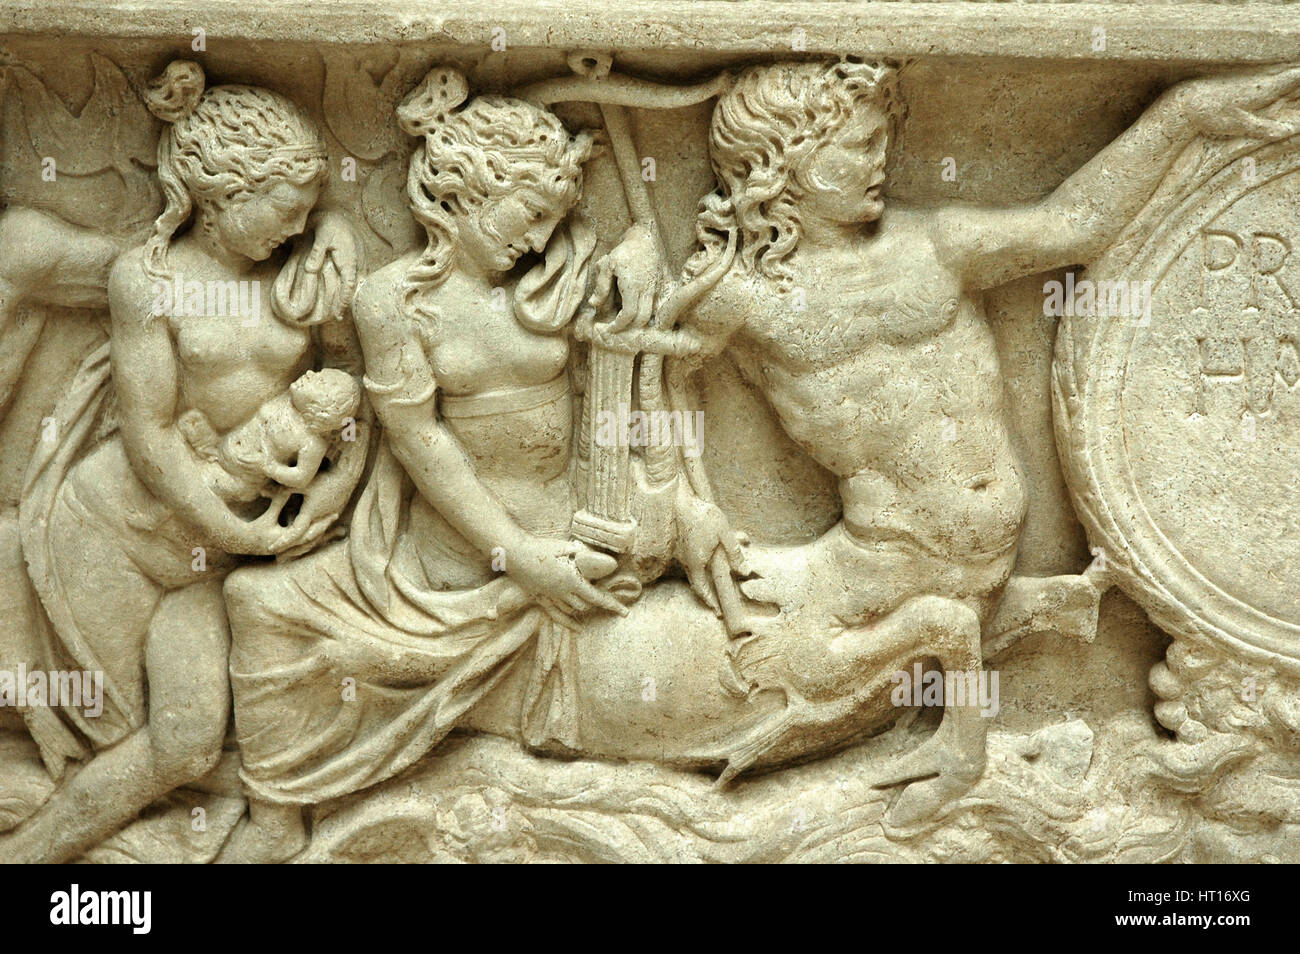 Relief from a sarcophagus depicting a centaur.   Culture: Roman. Credit Line: Werner Forman Archive, Artist: Werner - Stock Image